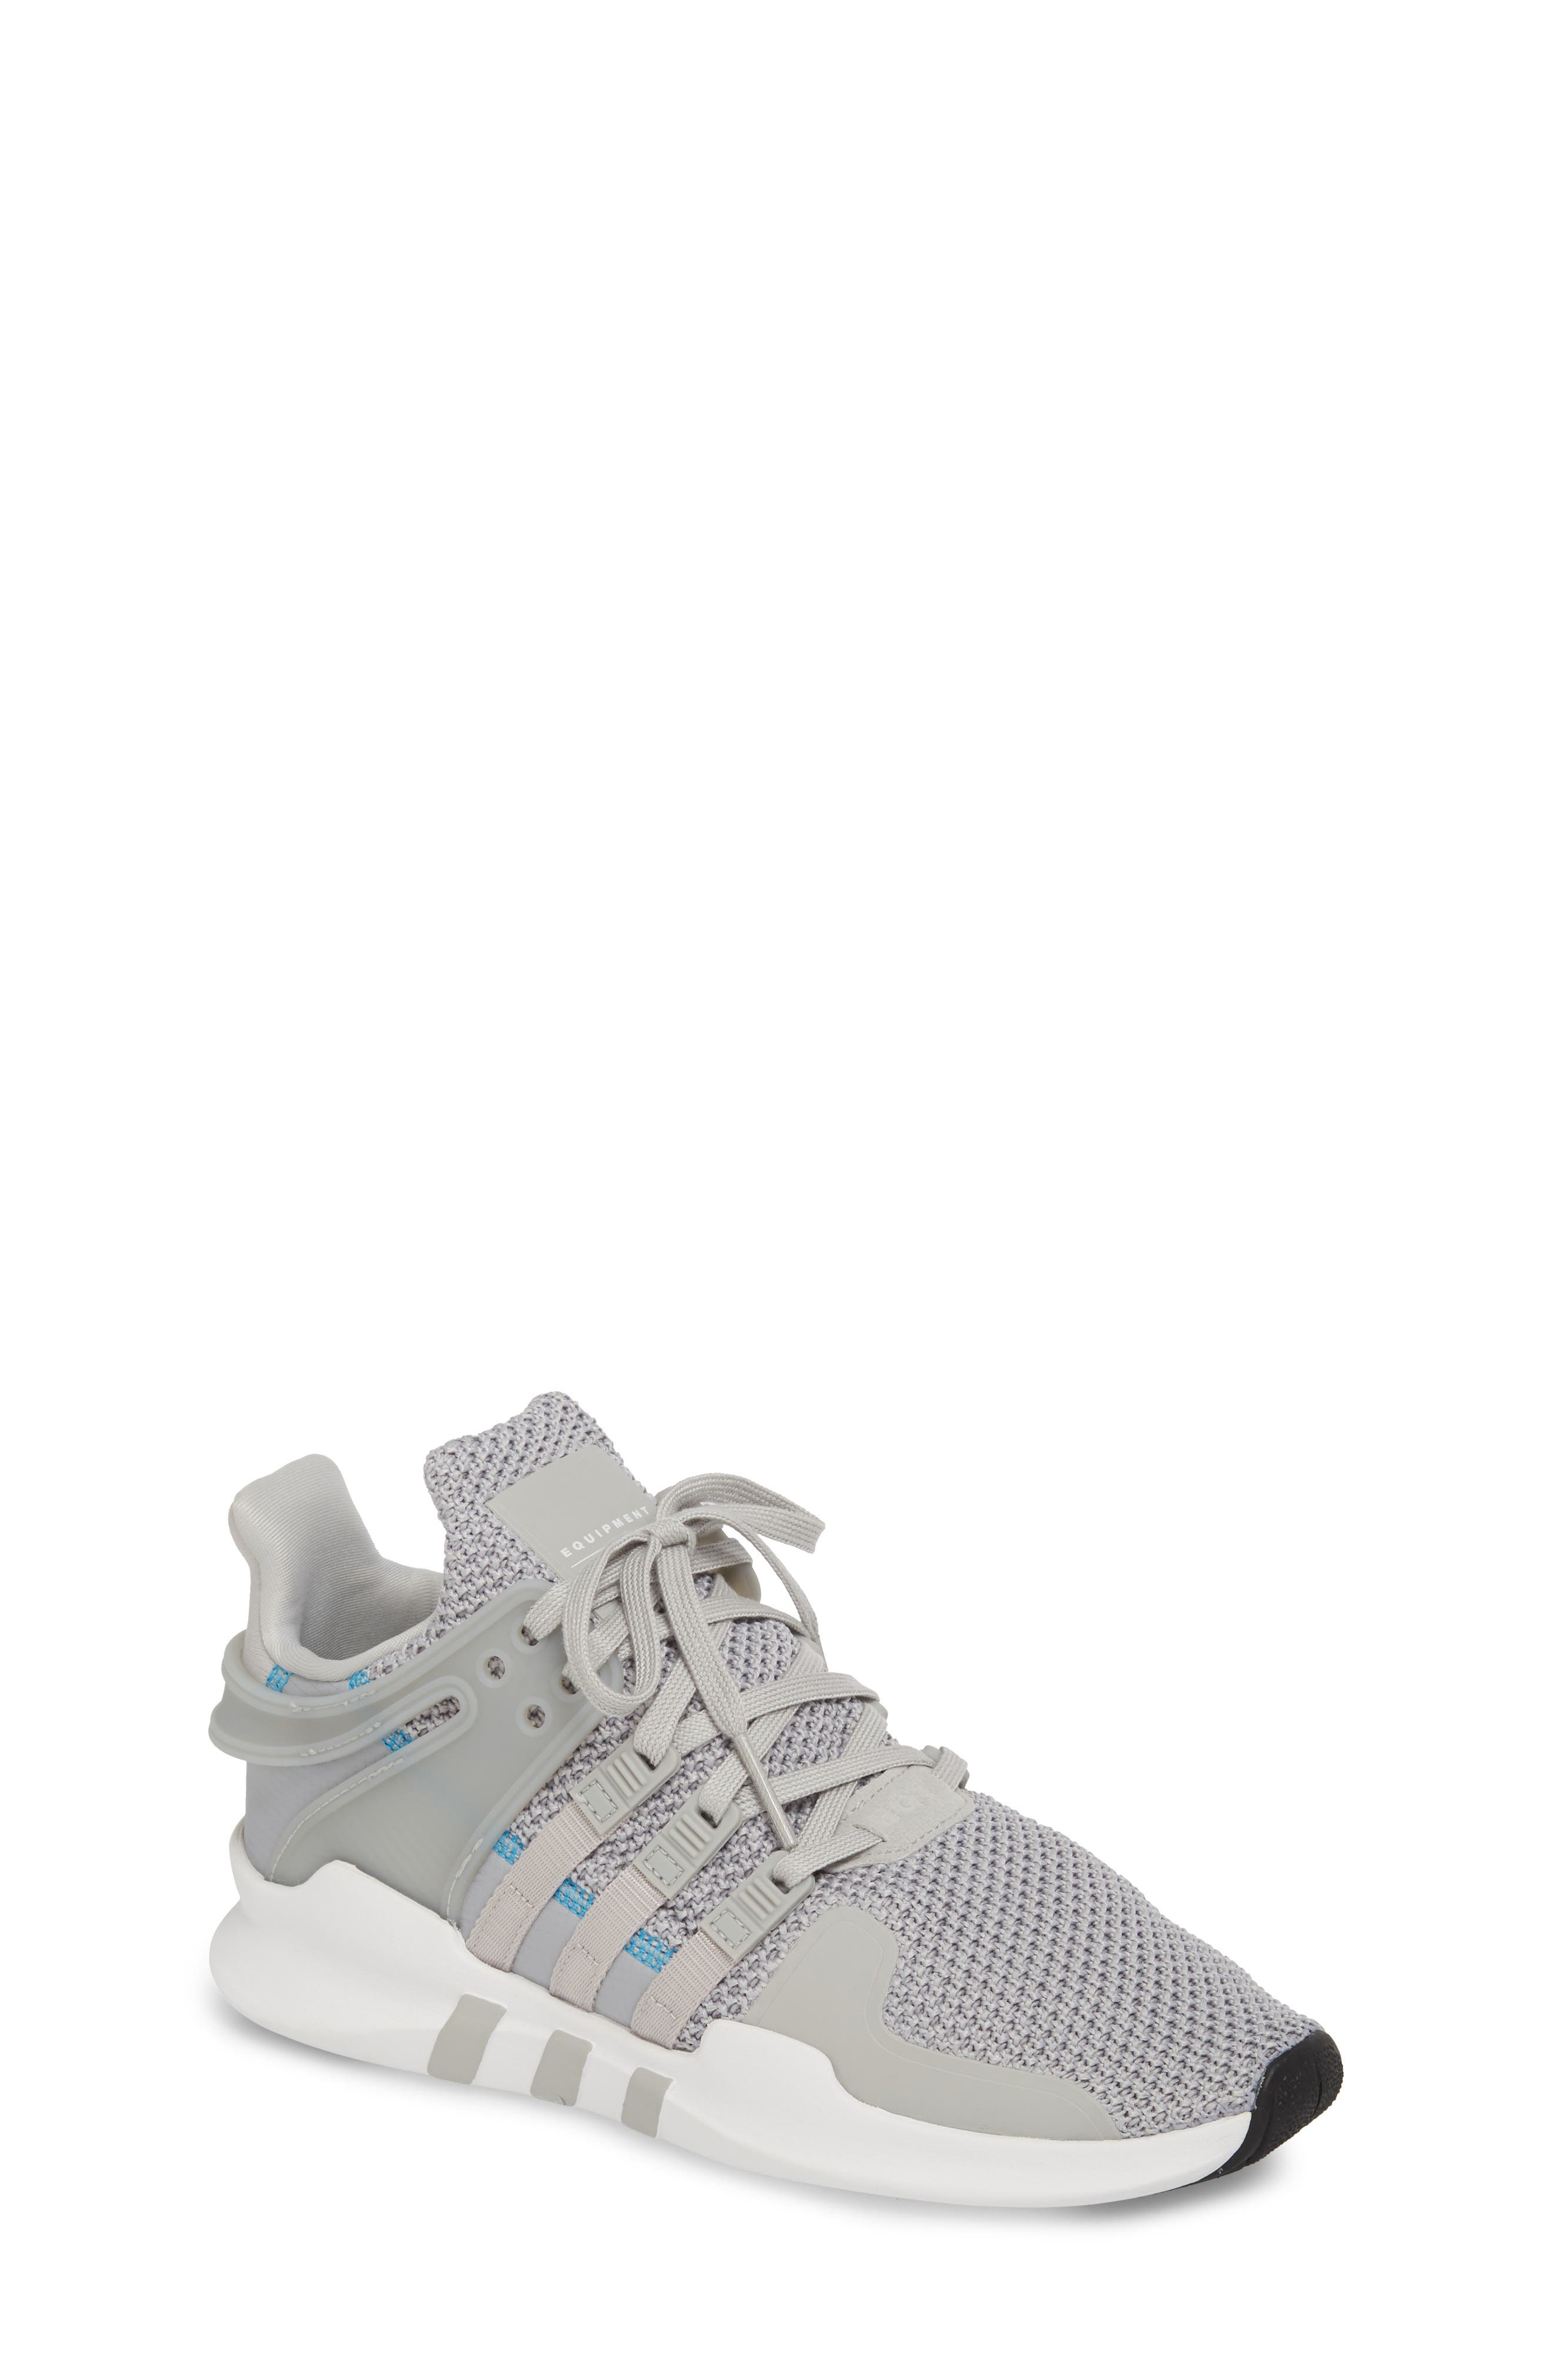 EQT Support Adv Sneaker,                             Main thumbnail 1, color,                             023